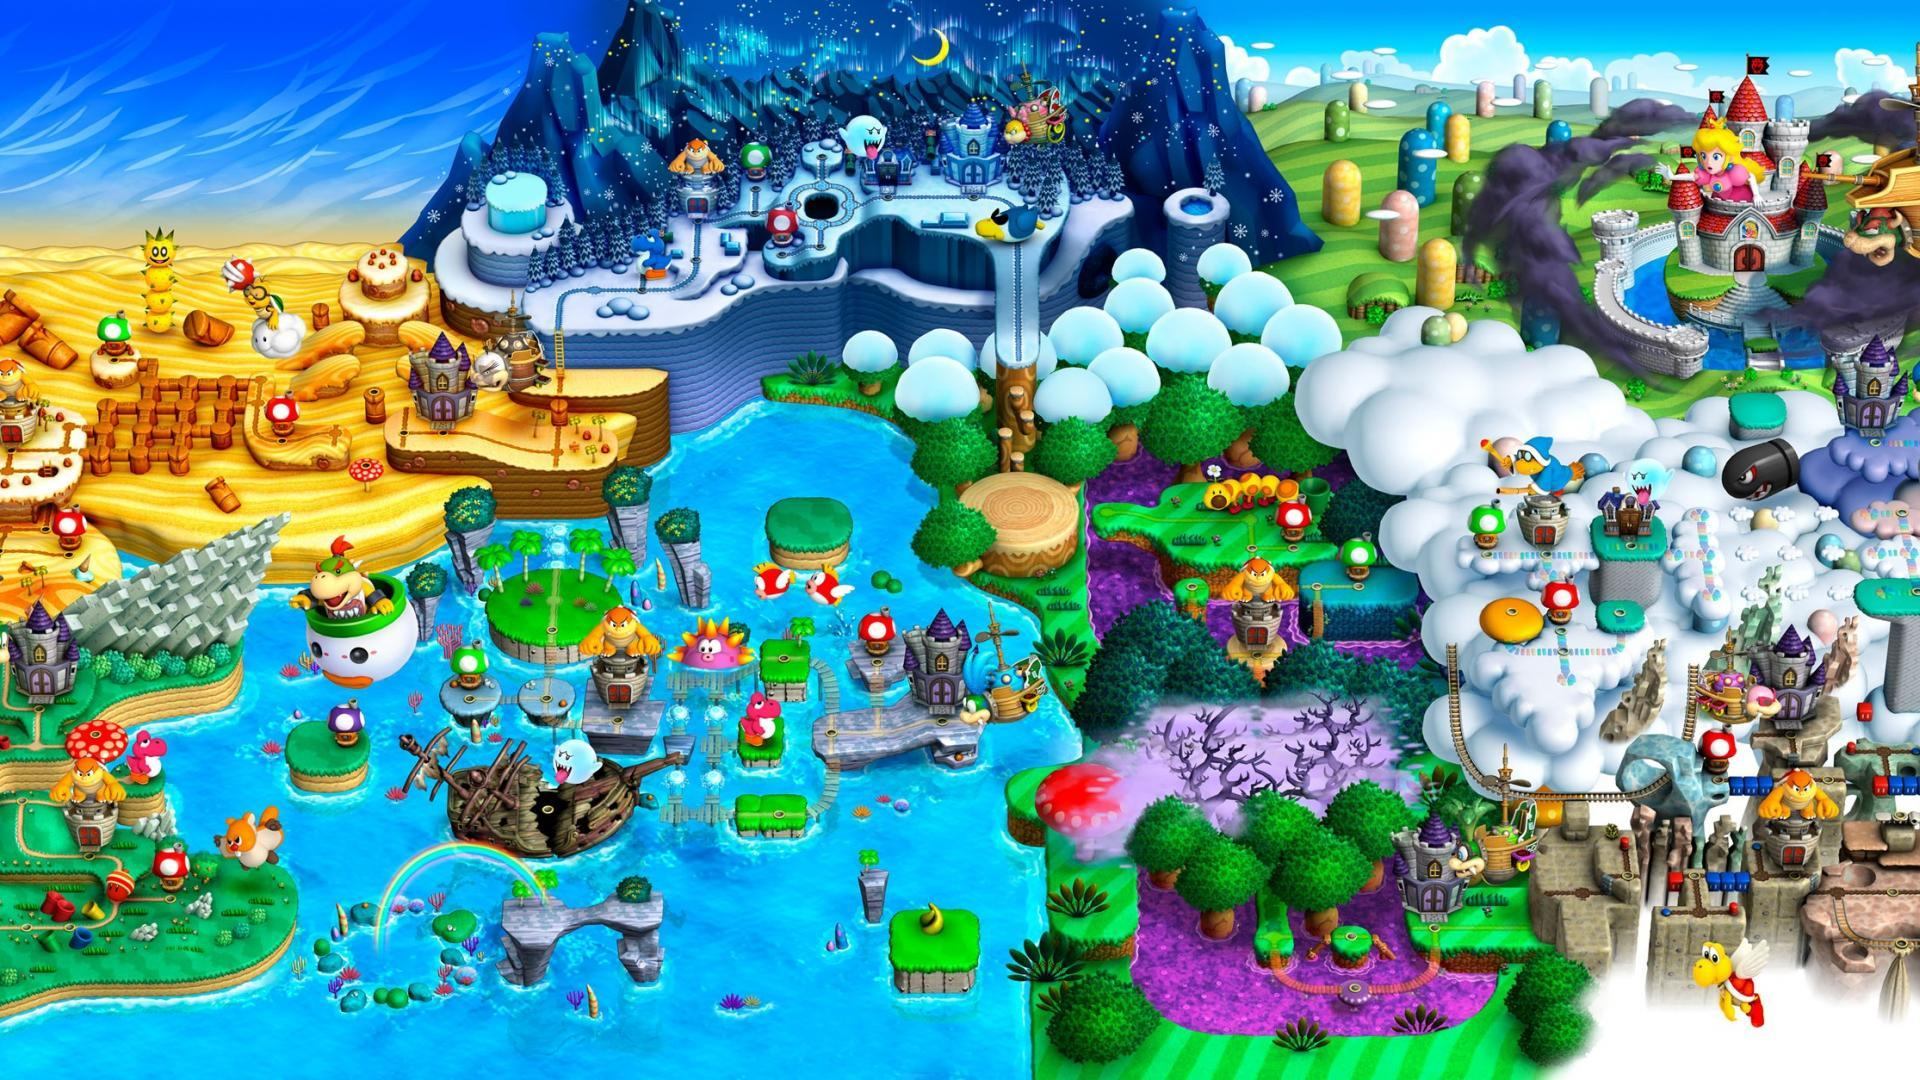 Super mario world map wallpapers wallpaper cave super mario world map wallpaper 73806 gumiabroncs Image collections